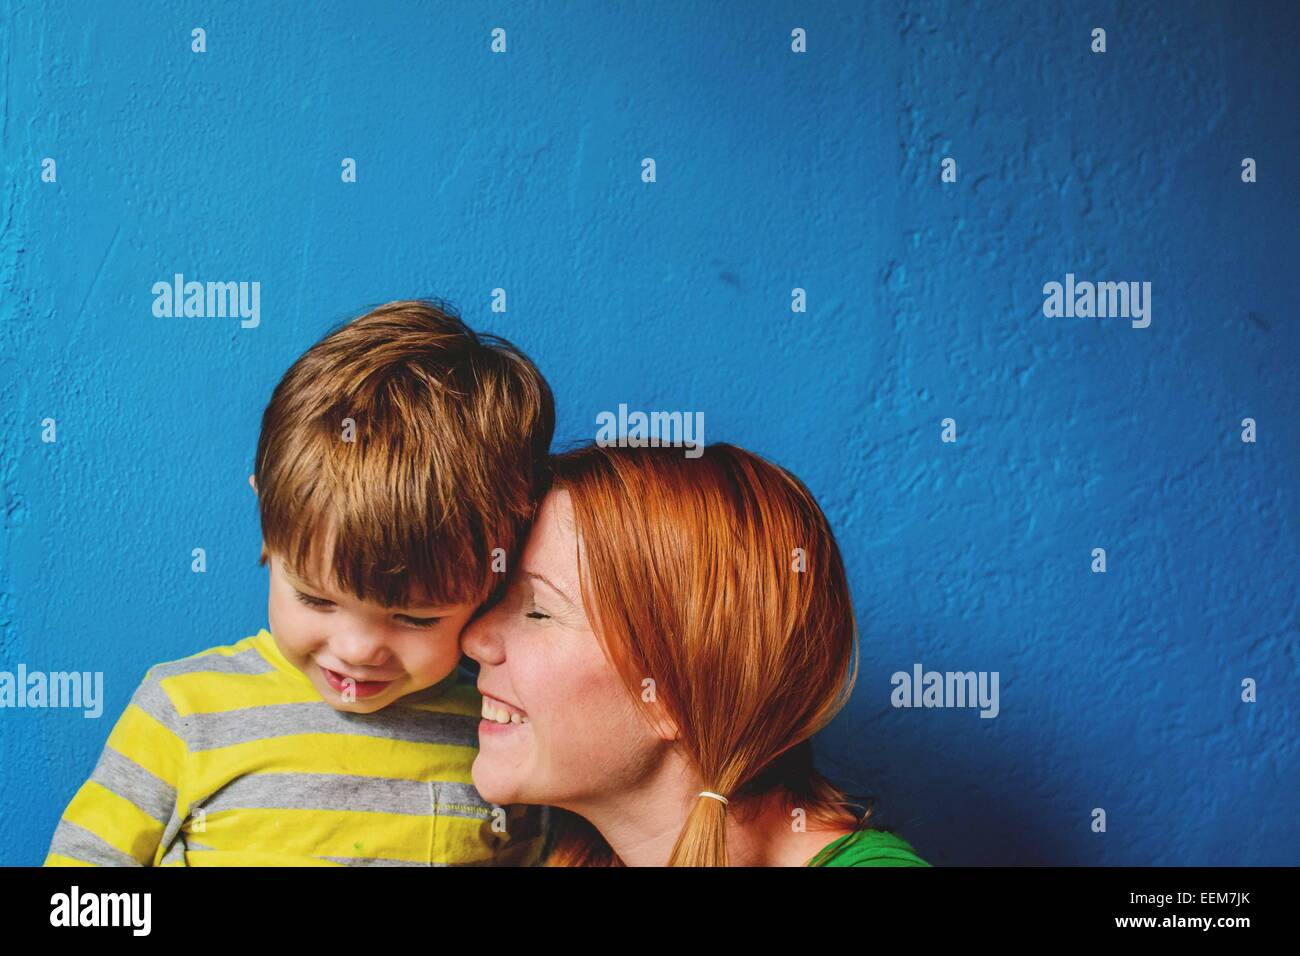 Mother nuzzling son's (2-3) face - Stock Image